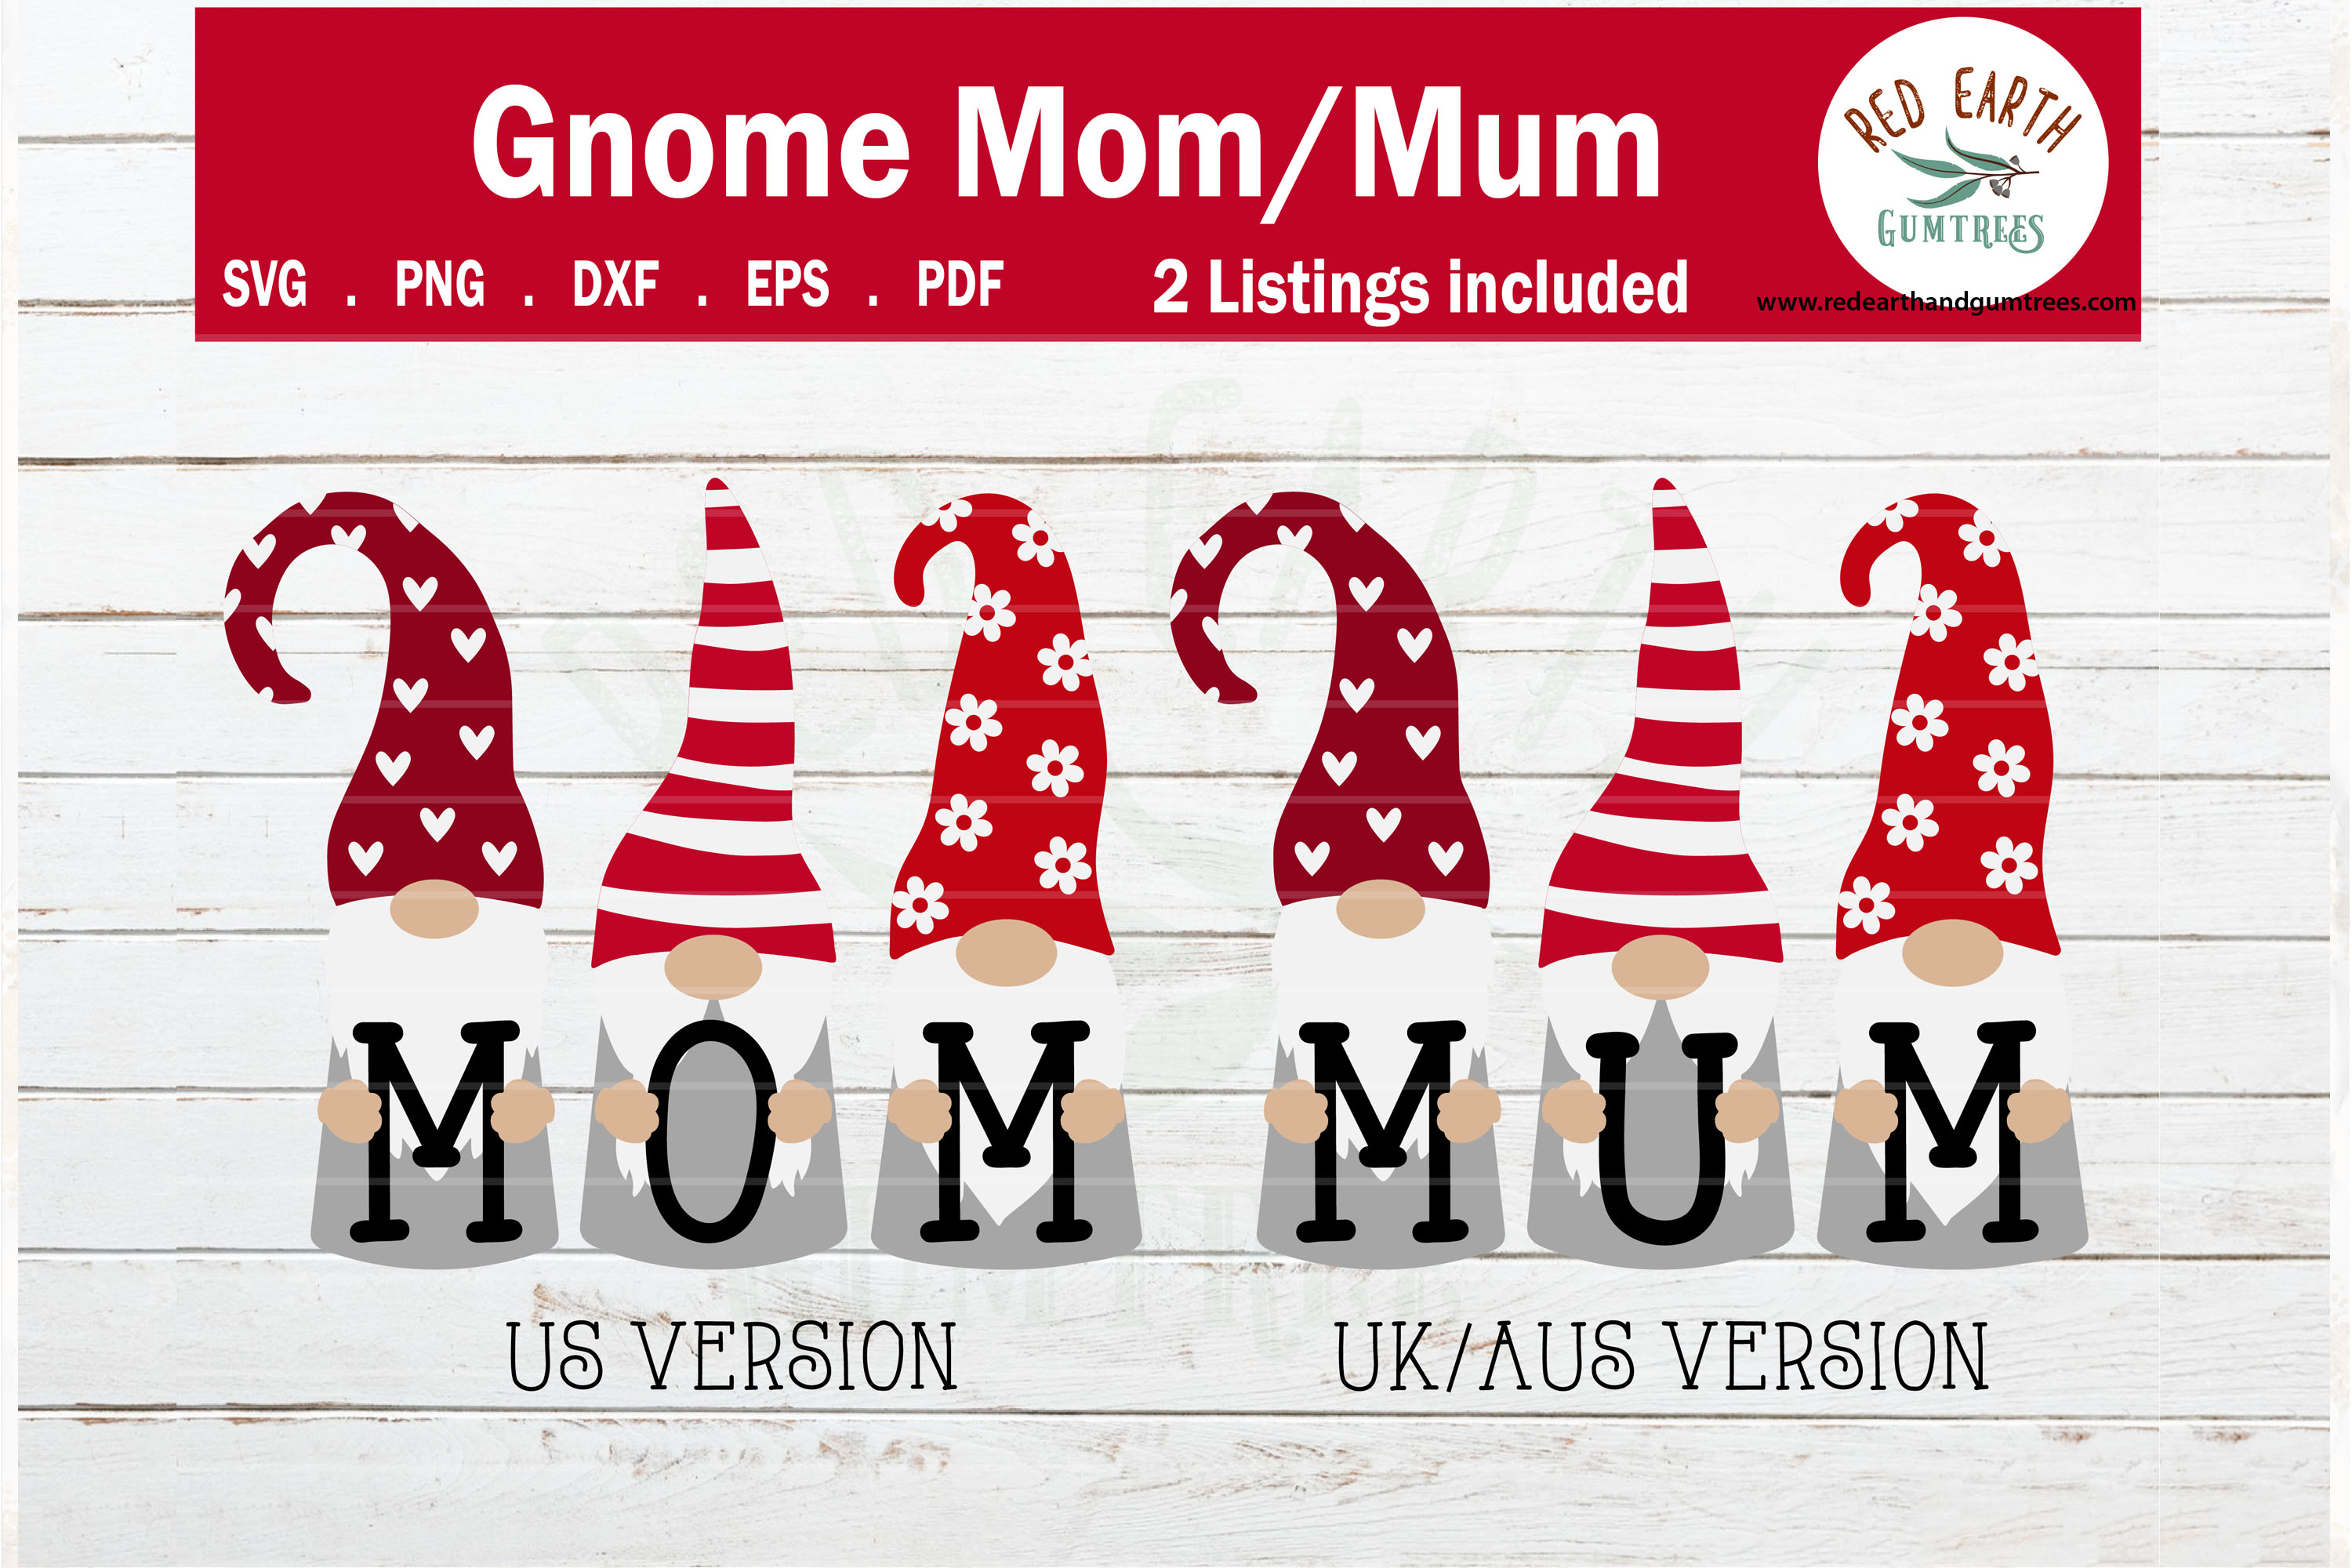 Download Free Gnome Mom Gnome Mum Mother S Day Graphic By Redearth And for Cricut Explore, Silhouette and other cutting machines.